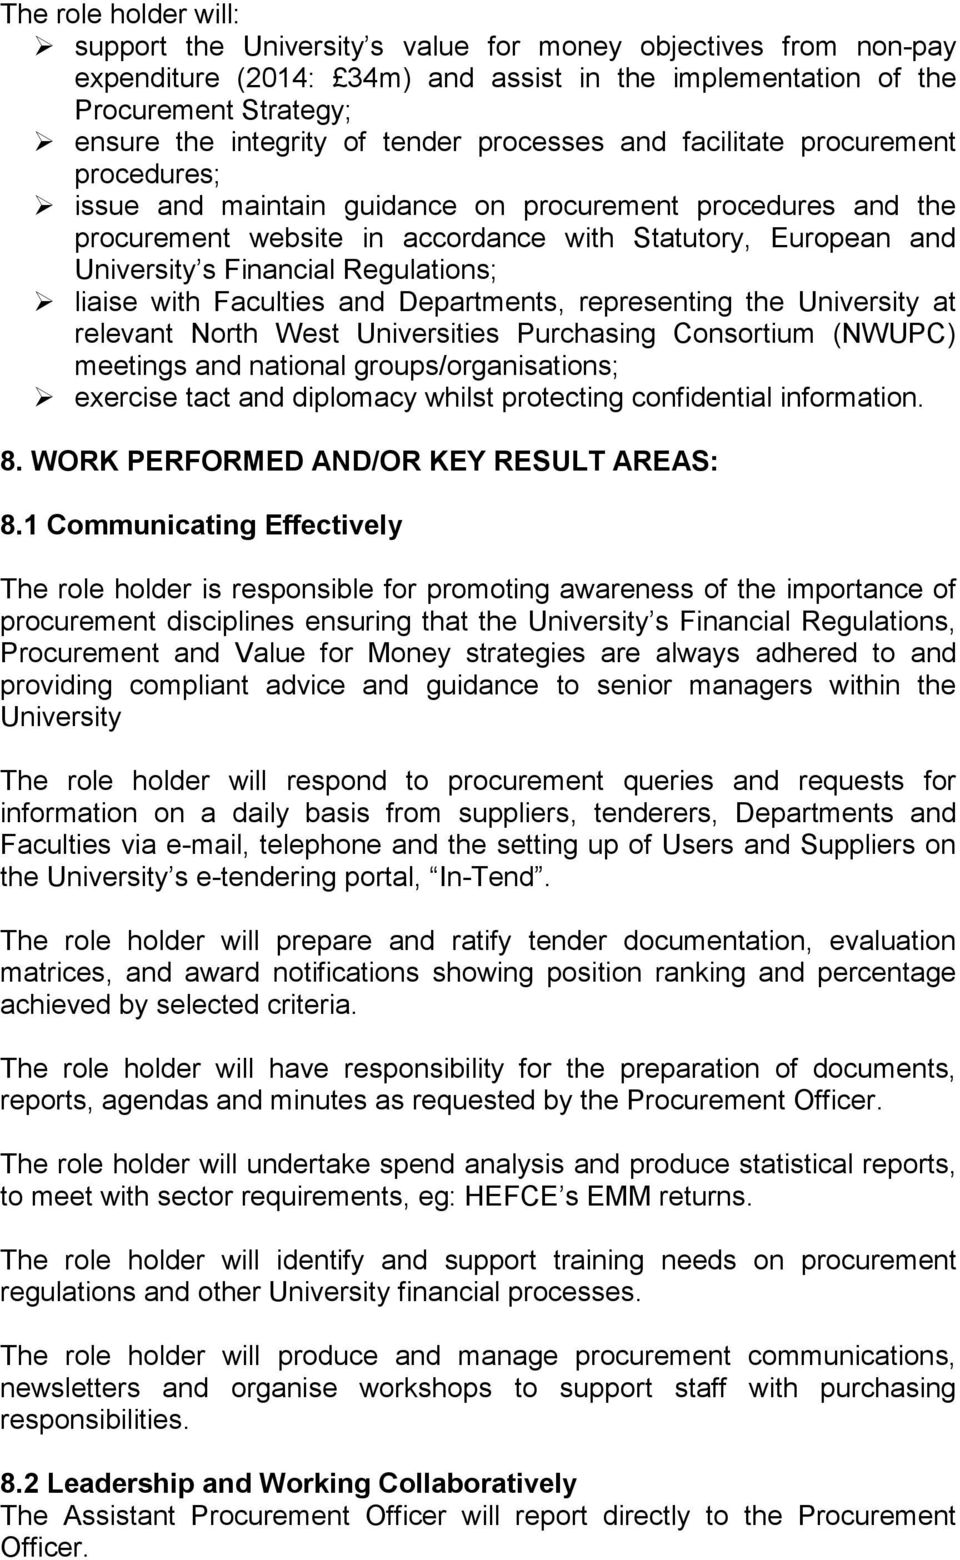 Financial Regulations; liaise with Faculties and Departments, representing the University at relevant North West Universities Purchasing Consortium (NWUPC) meetings and national groups/organisations;